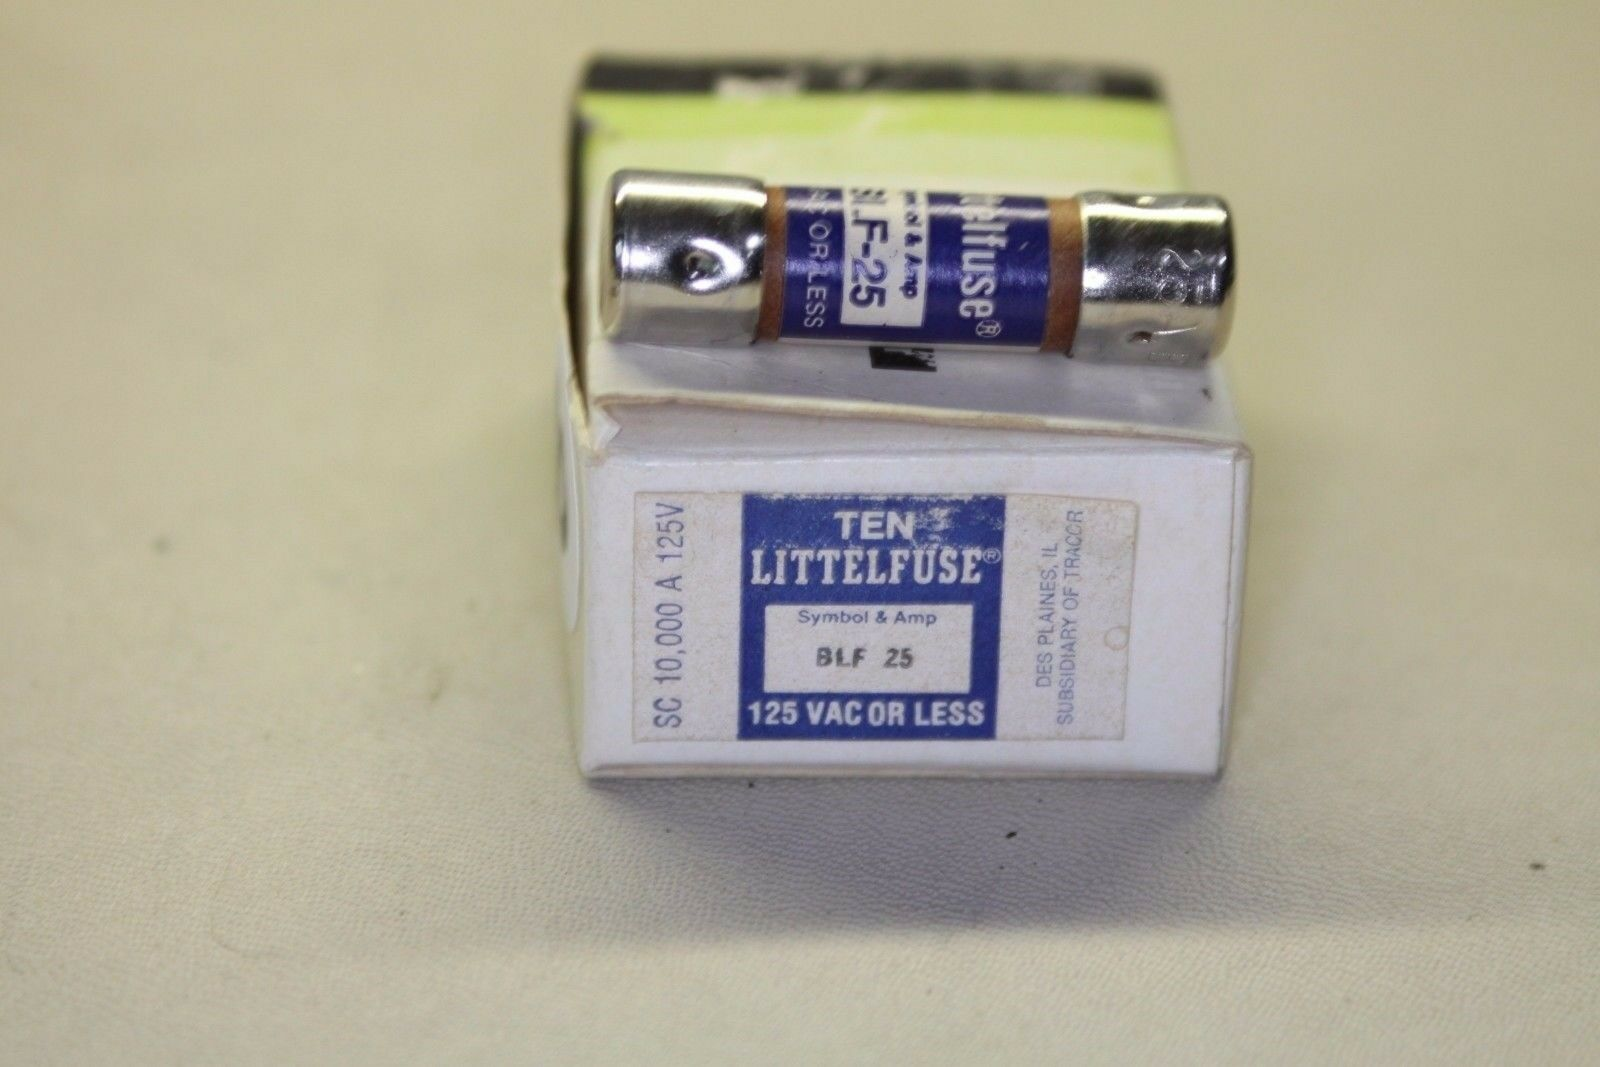 Littlefuse Blf 25 125v Fuse Box Of 10 1995 Picclick 125 Amp 1 3only 3 Available